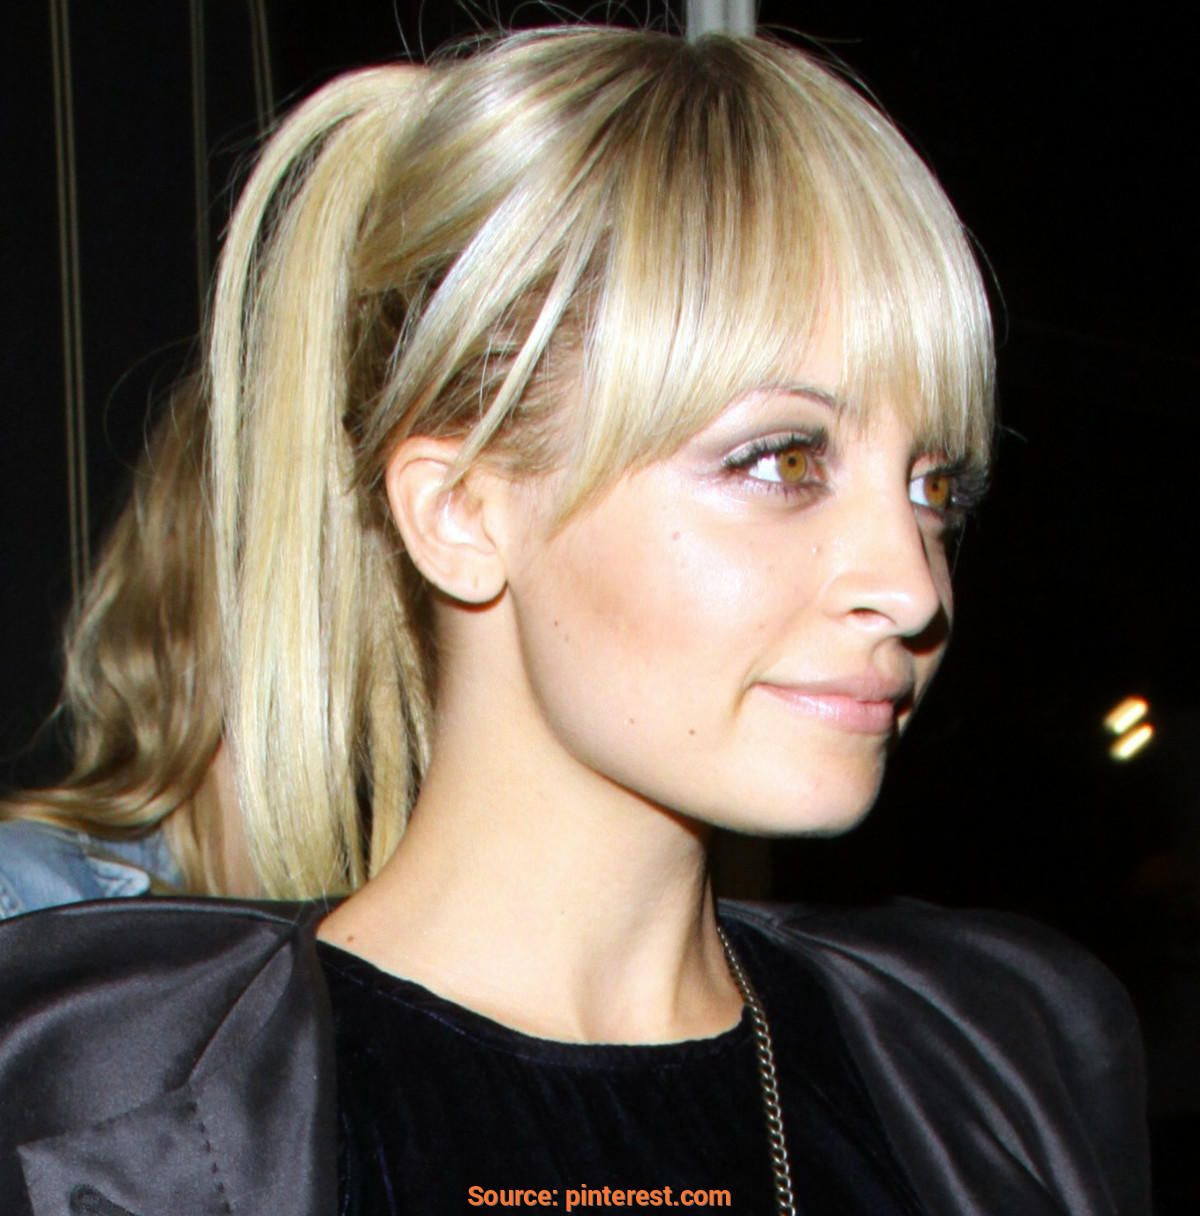 Gut Long Bob Mit Pony Wem Stehts Hateaudesteau Layered Hair With Bangs Thick Hair Styles Nicole Richie Hair